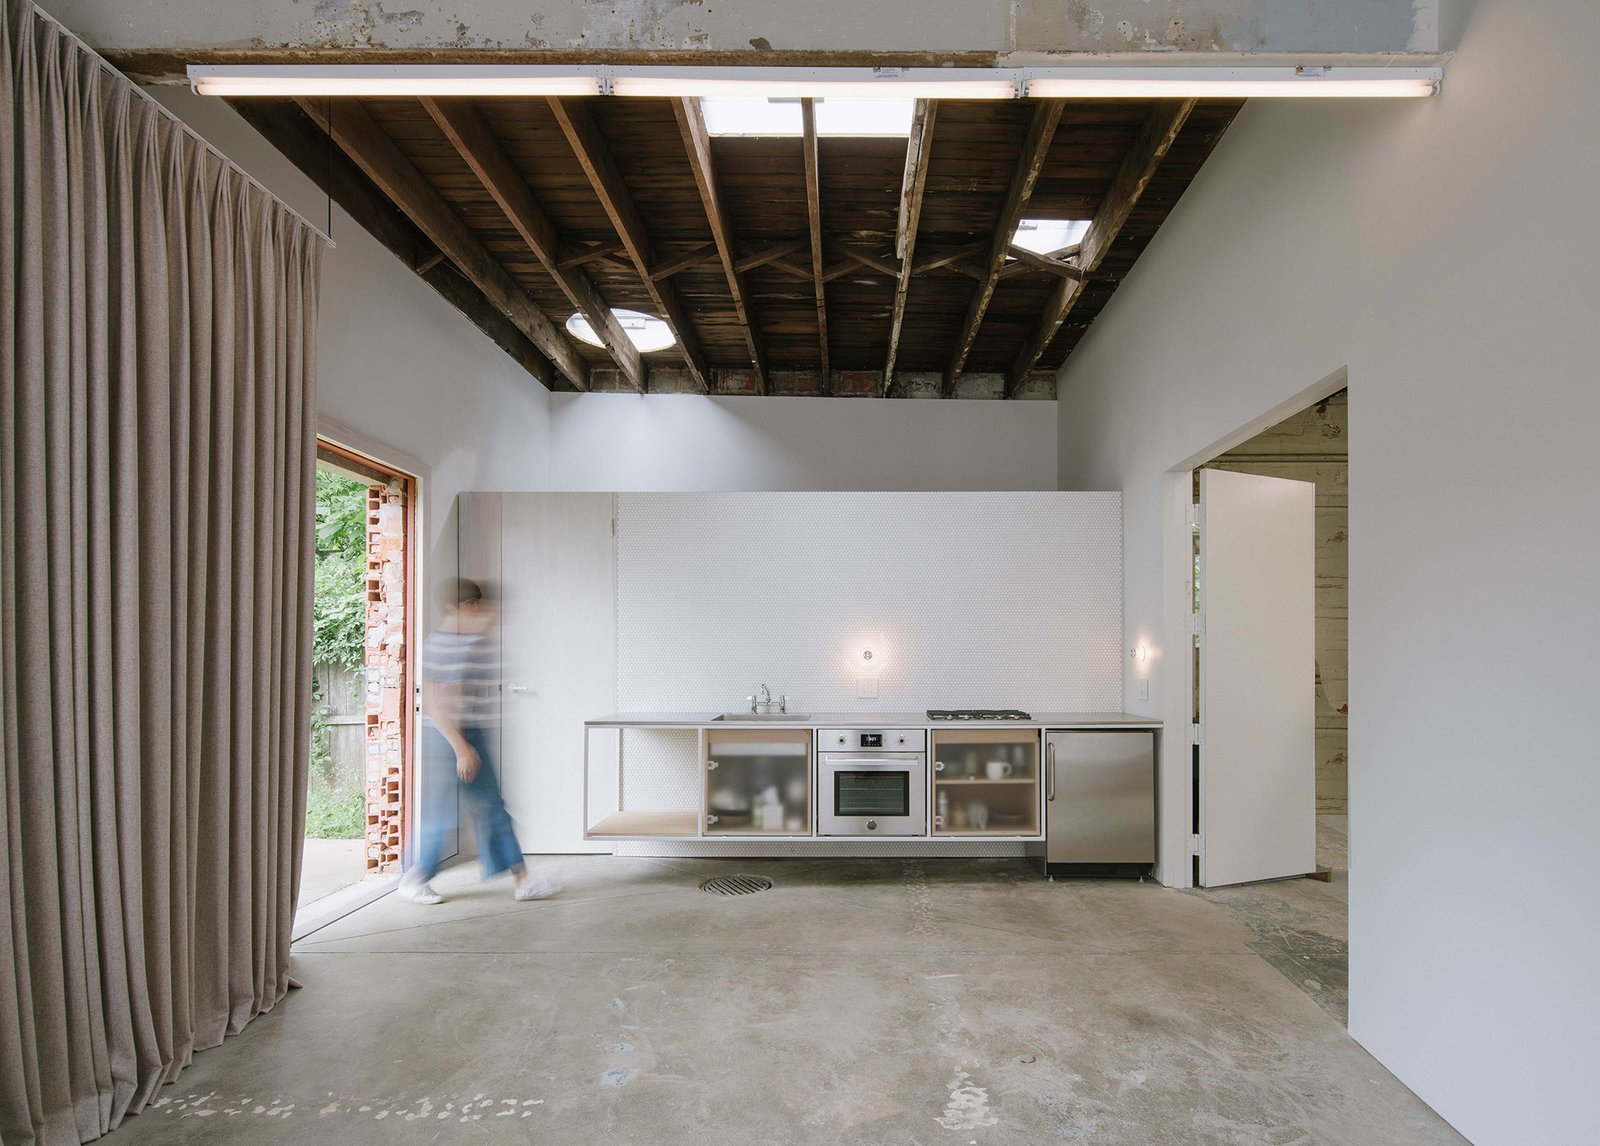 Kitchen, Wall Oven, Concrete, Ceiling, Range, Refrigerator, Wall, and Drop In Instead of clearing out the building and designing the interior from scratch, the designers Davidson and Rafailidis reinterpreted the existing space.  Kitchen Concrete Refrigerator Wall Range Photos from A 1920s Masonry Garage Is Reborn as a Flexible Live/Work Space